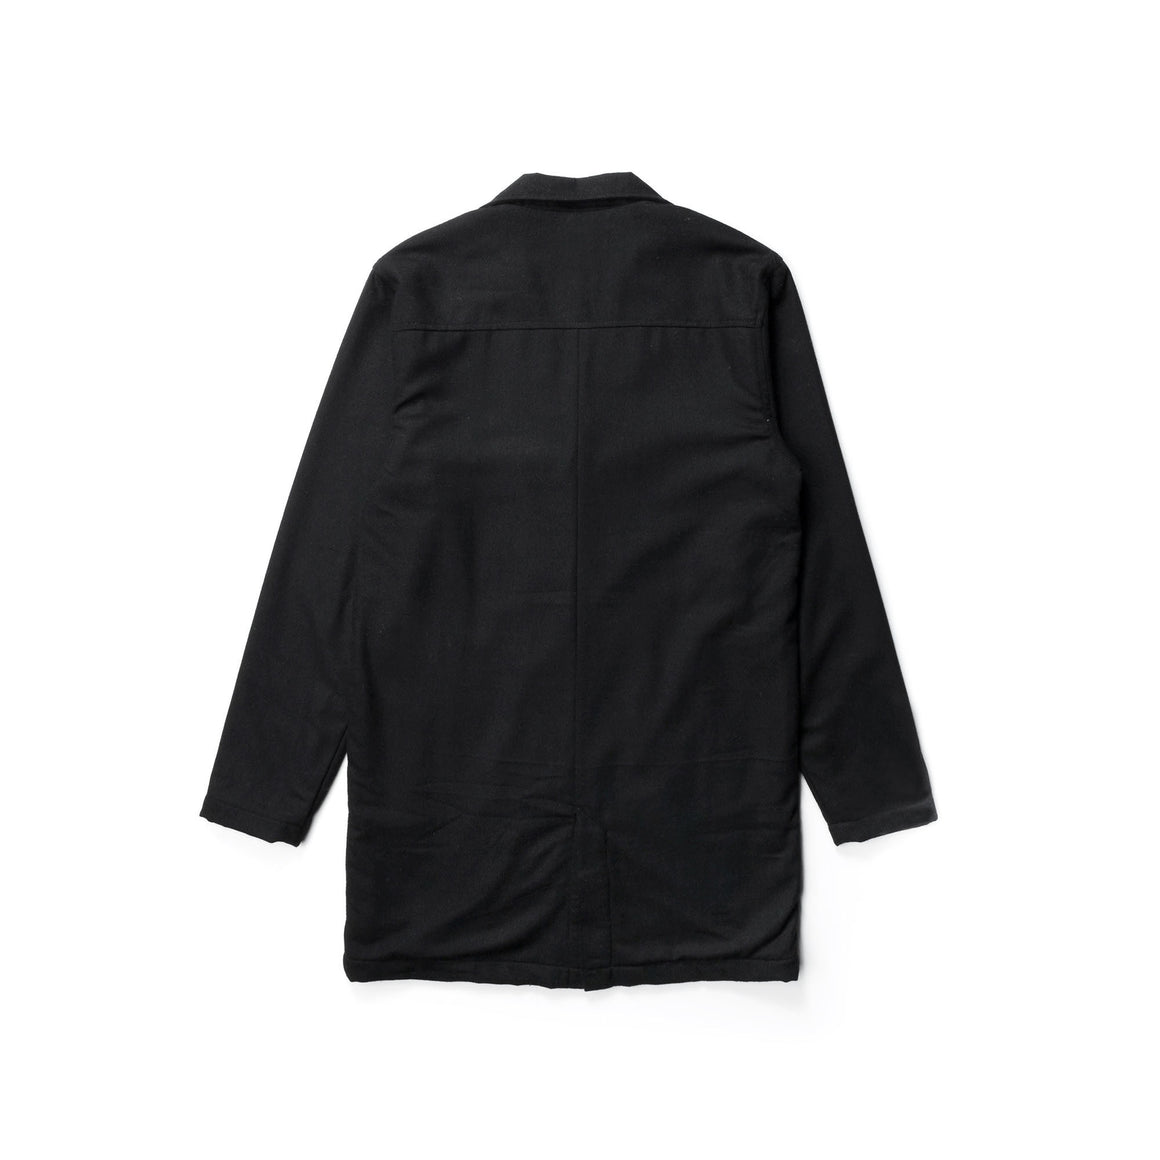 PUBLISH GIANNI JACKET